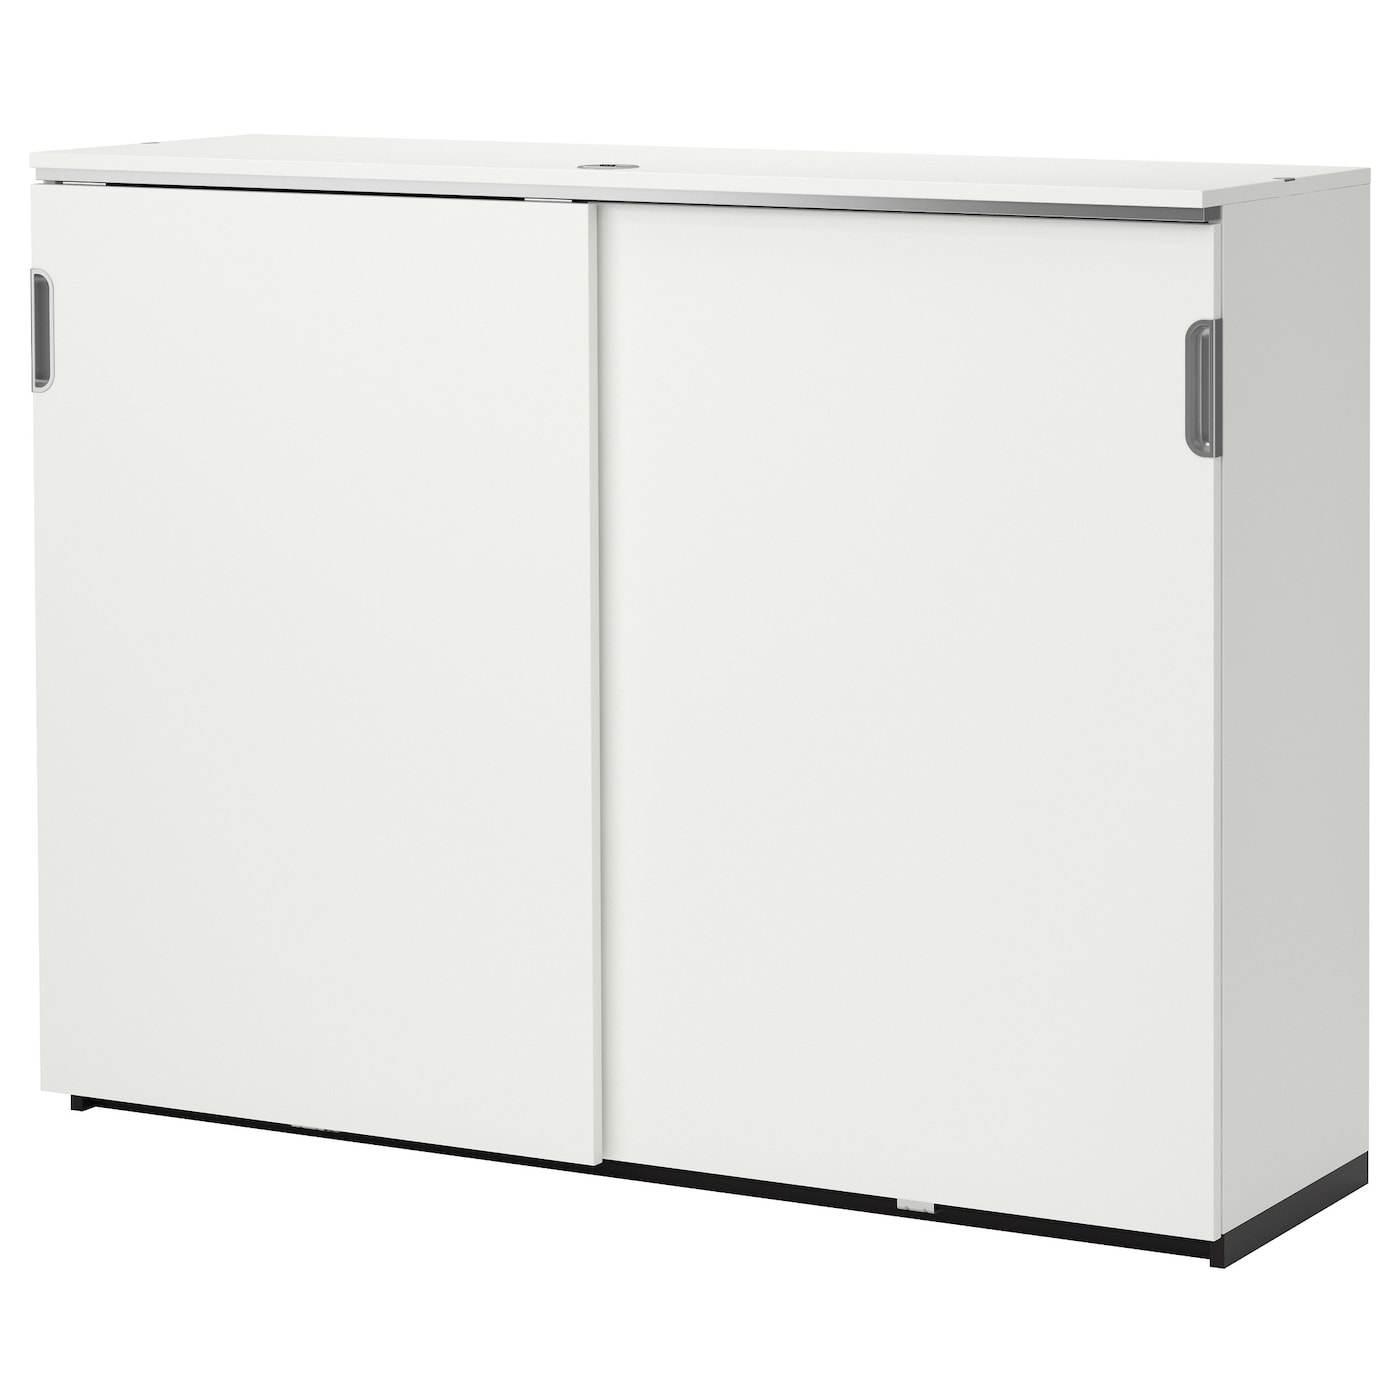 galant cabinet with sliding doors white 160x120 cm ikea. Black Bedroom Furniture Sets. Home Design Ideas